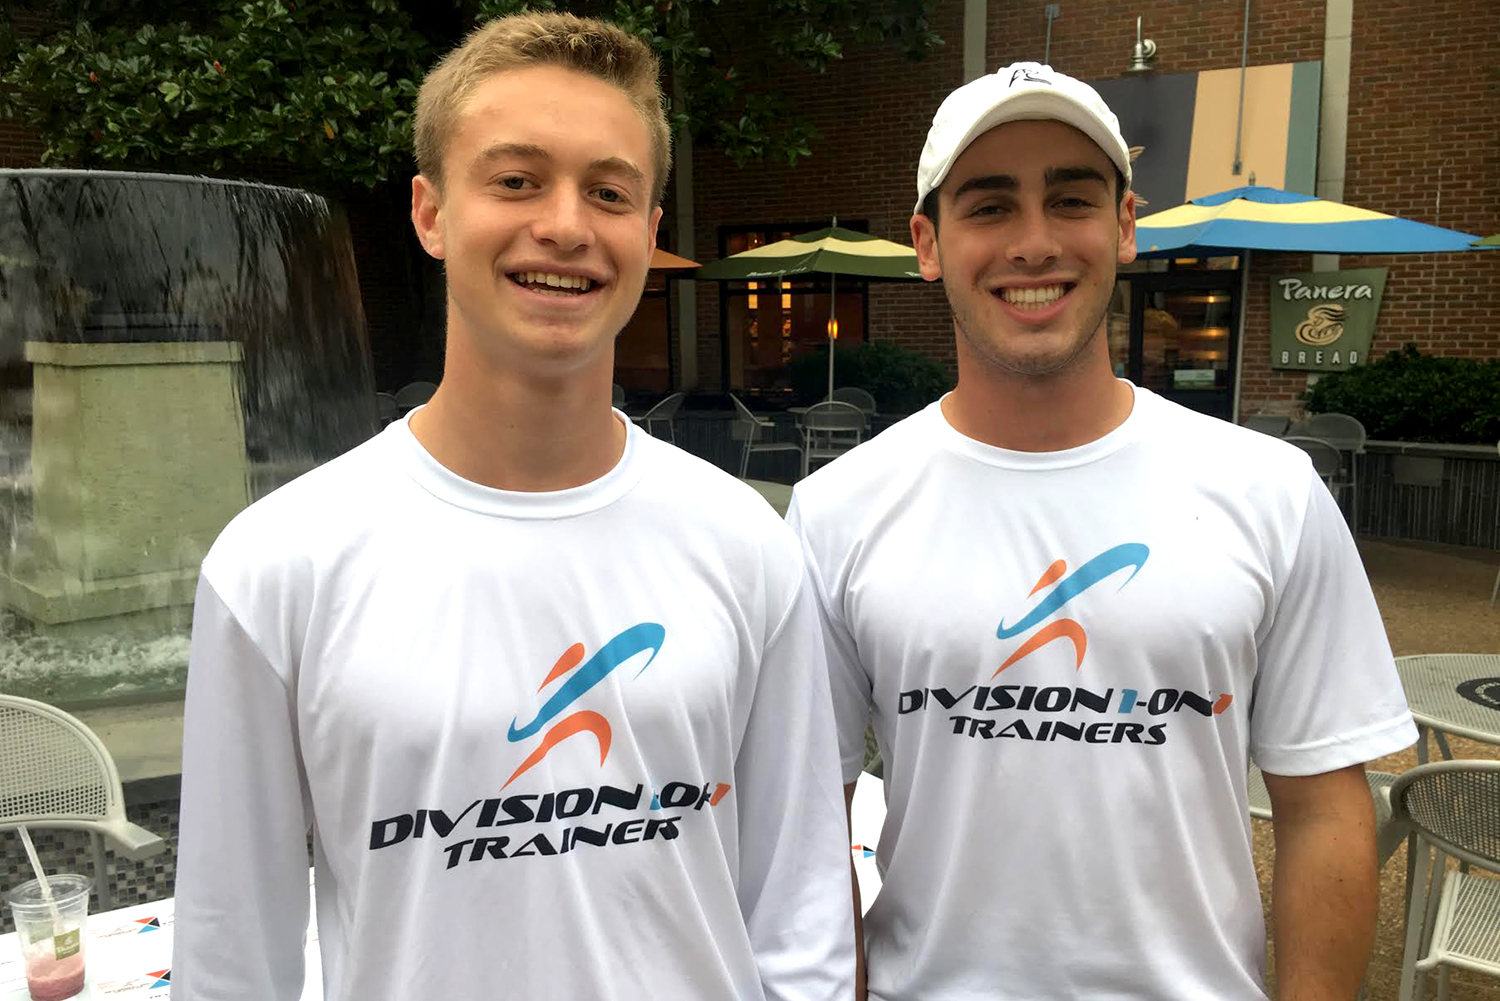 Division 1-on-1 Trainers, a company started by third-year UVA students Grant Sirlin and Jared Vishno, pairs UVA student-athletes with athletes in the Charlottesville community for personal training lessons. Typically, clients range in age from 8 to 18, with all skill levels welcome.